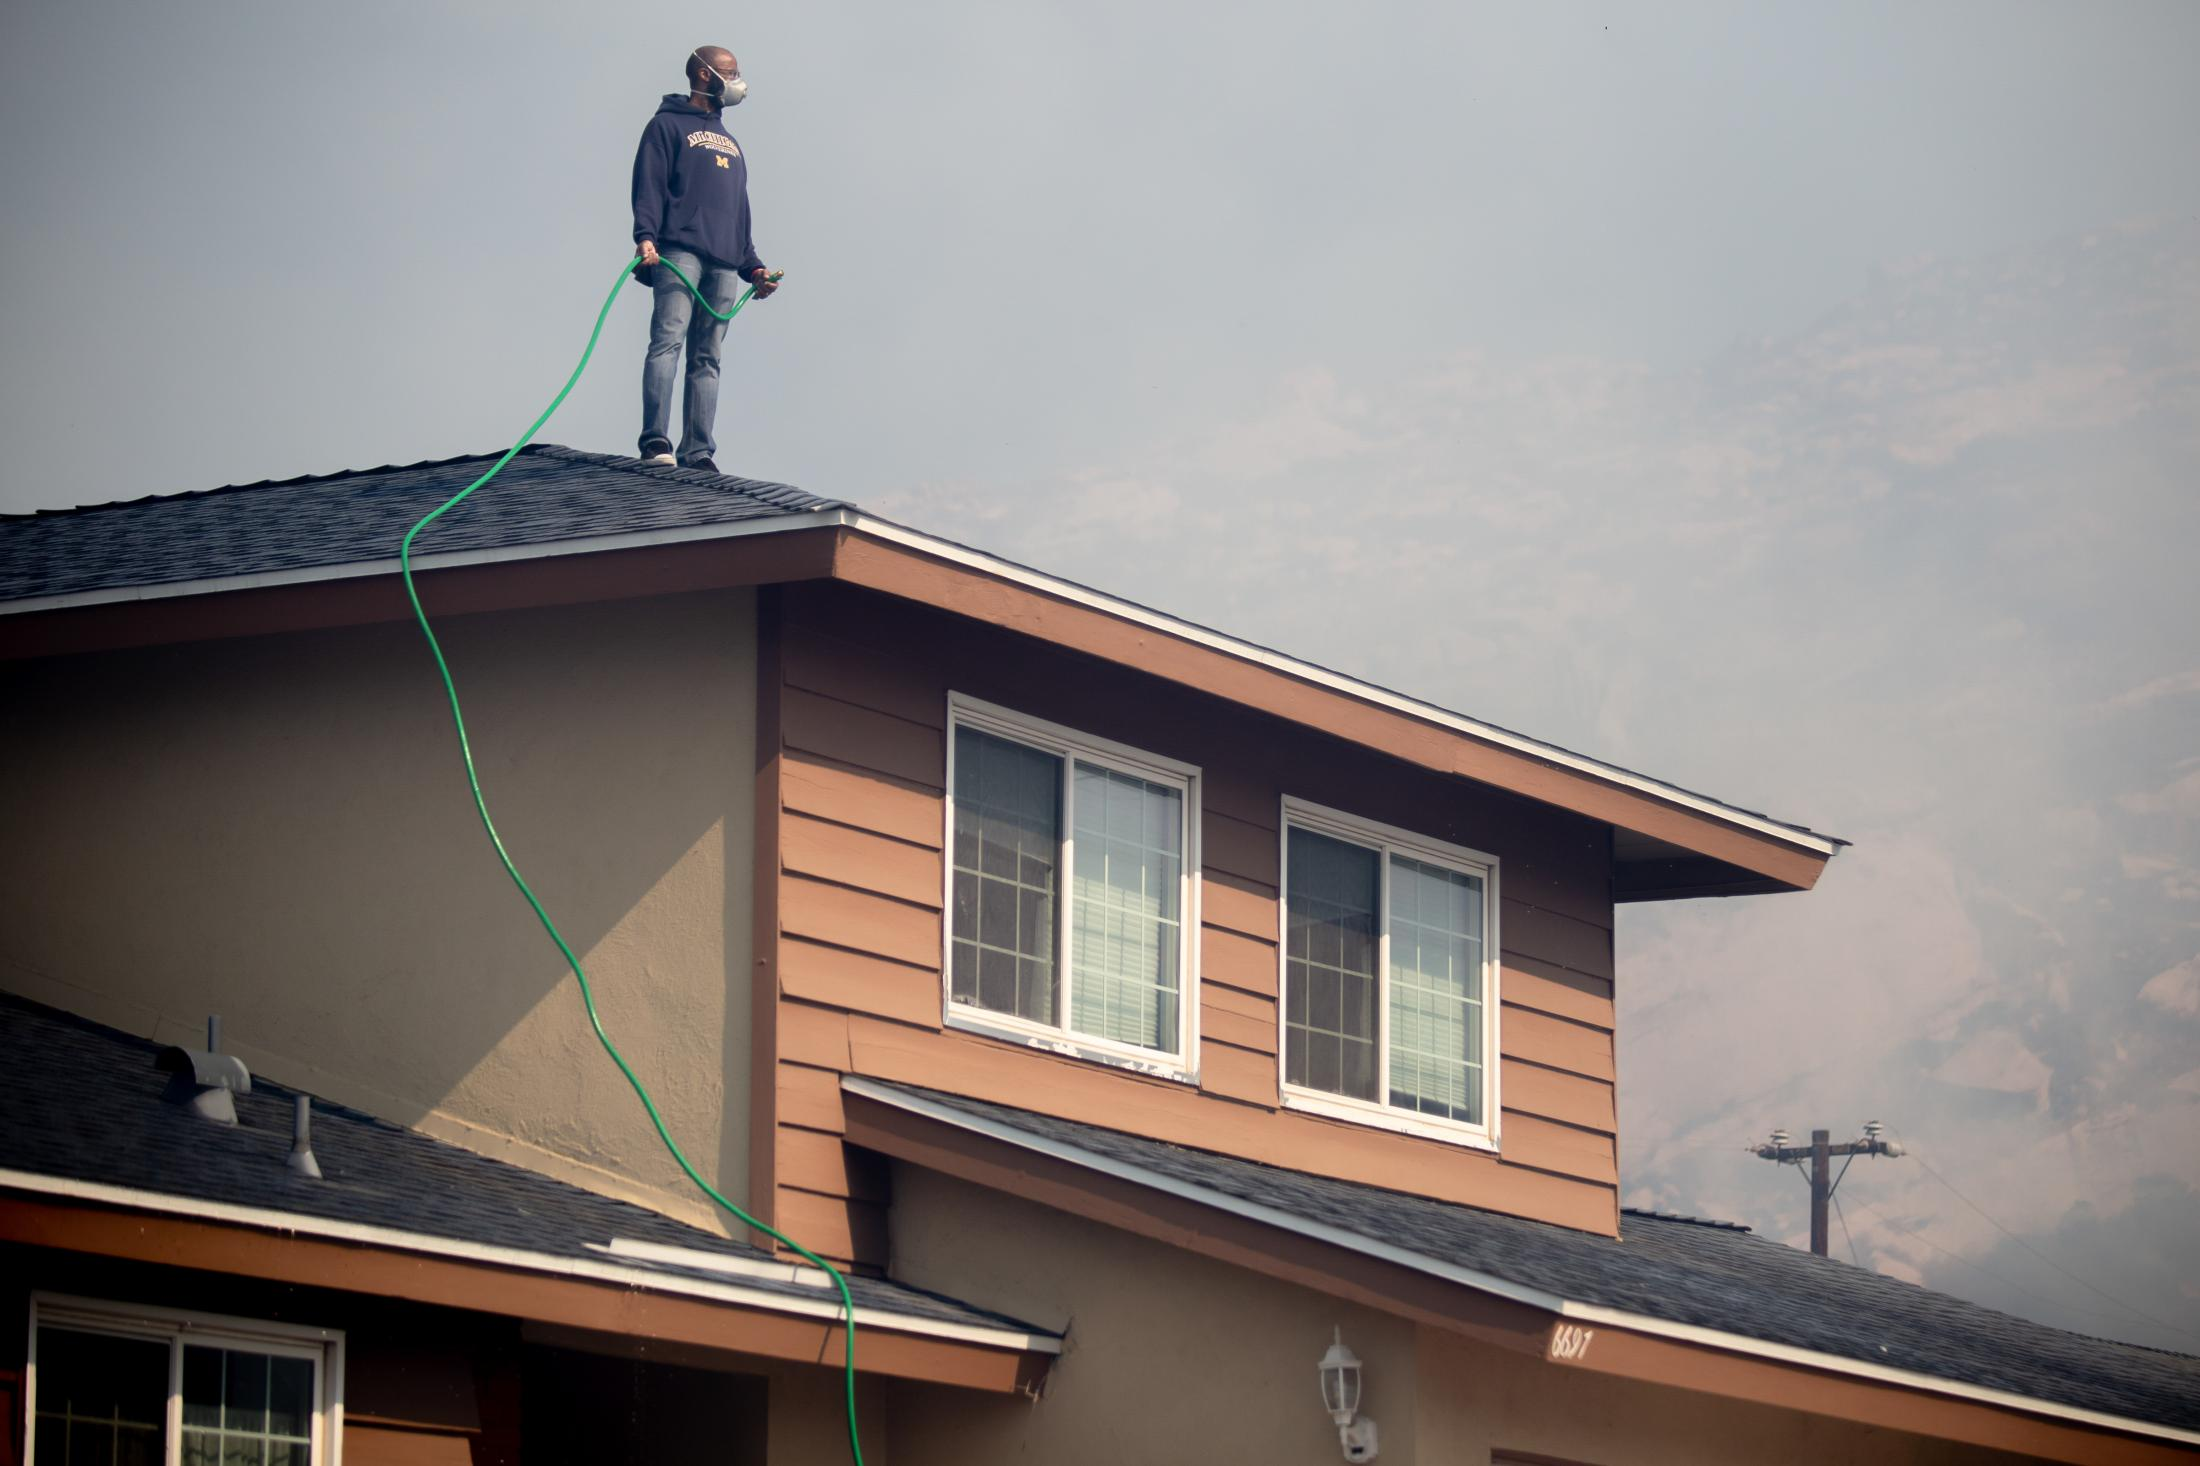 A resident stands on his roof with a garden house trying to water down his house to protect the home from the incoming wildfire.